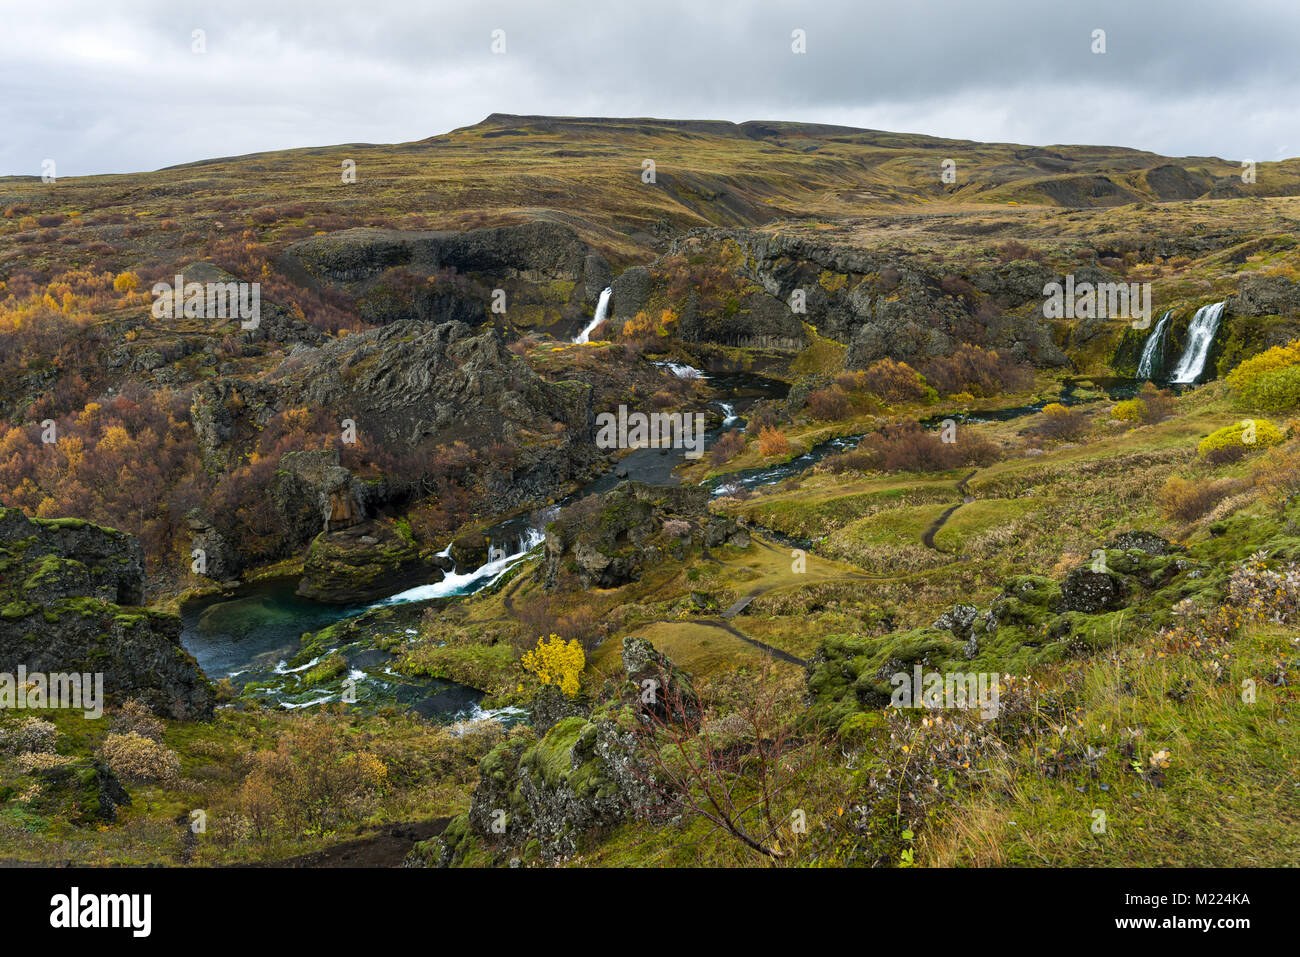 Gjainfoss waterfall in the Gjain valley of the Highlands of Iceland in Autumn colours on a cloudy day, Iceland - Stock Image